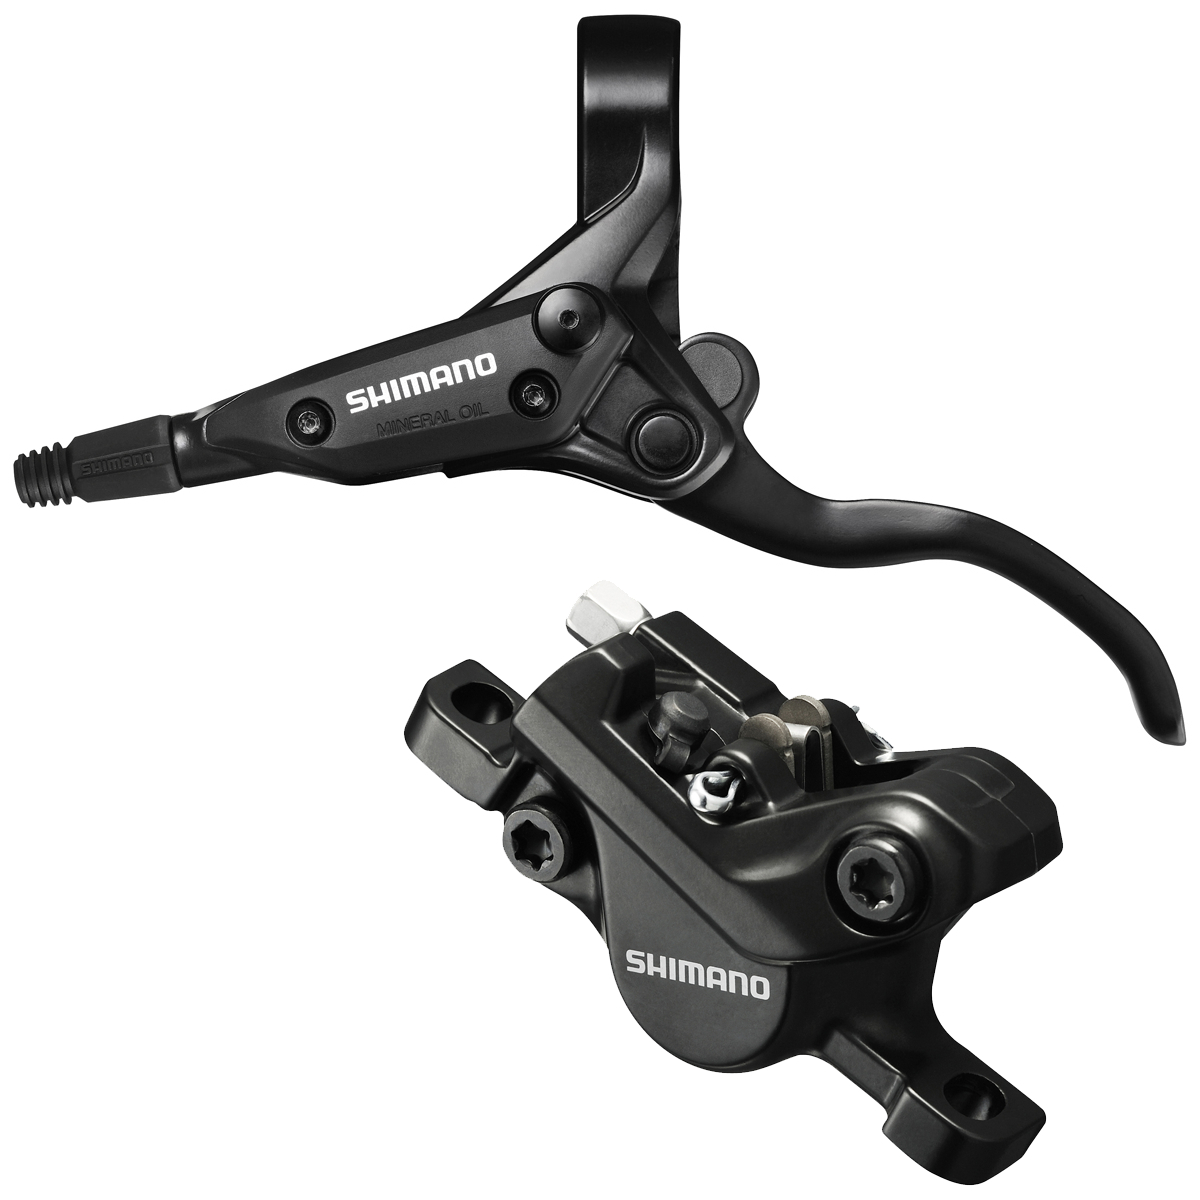 Shimano Skivebremsesæt For Sort M396 1000mm BH59